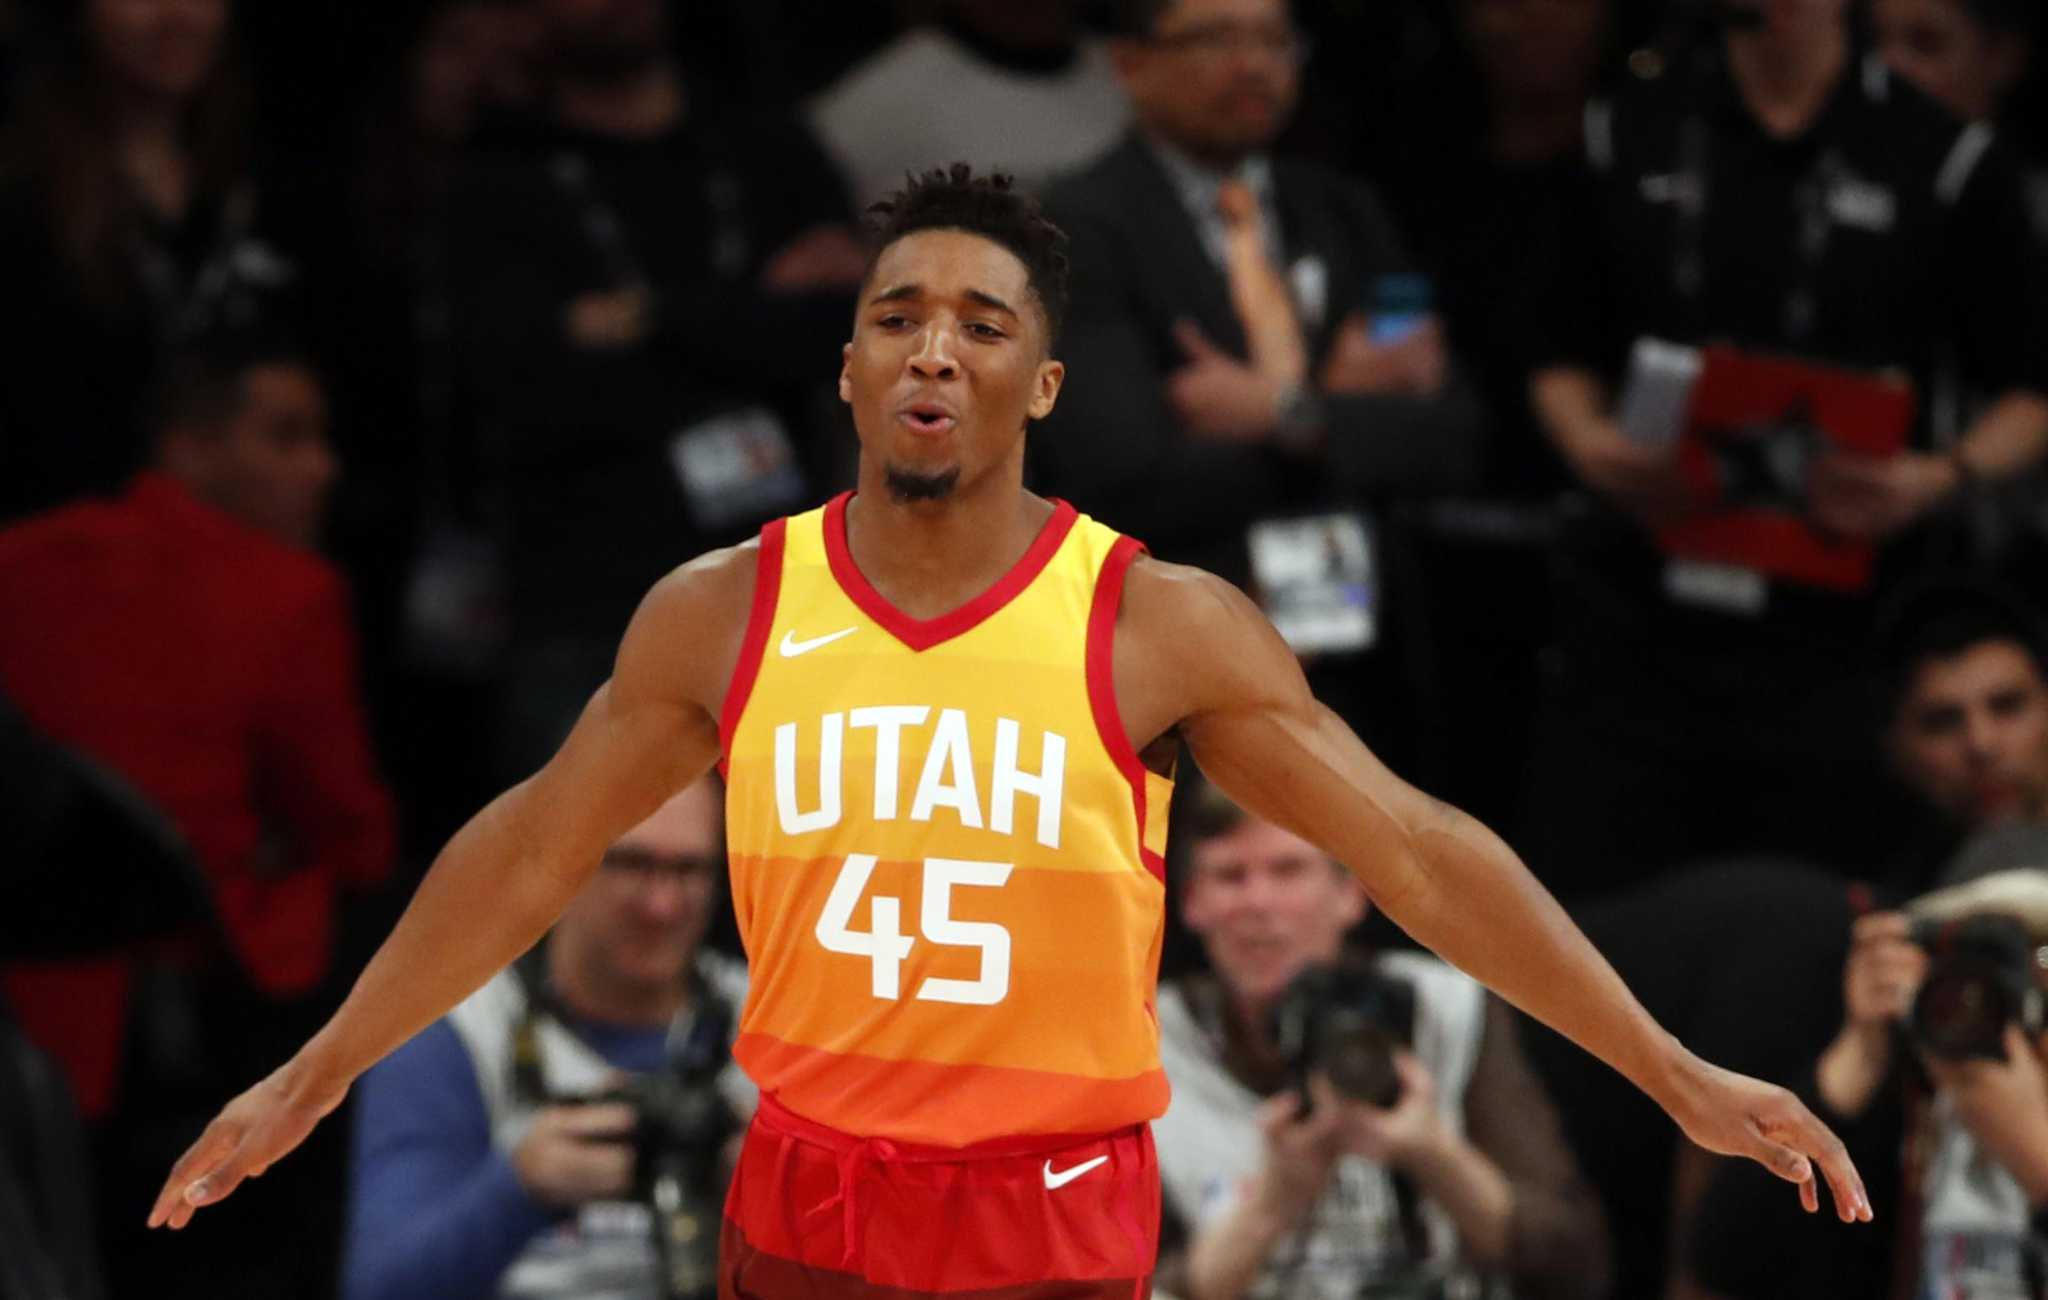 Jazz rookie Donovan Mitchell wins All-Star dunk contest - SFChronicle.com 8ea90b7e1